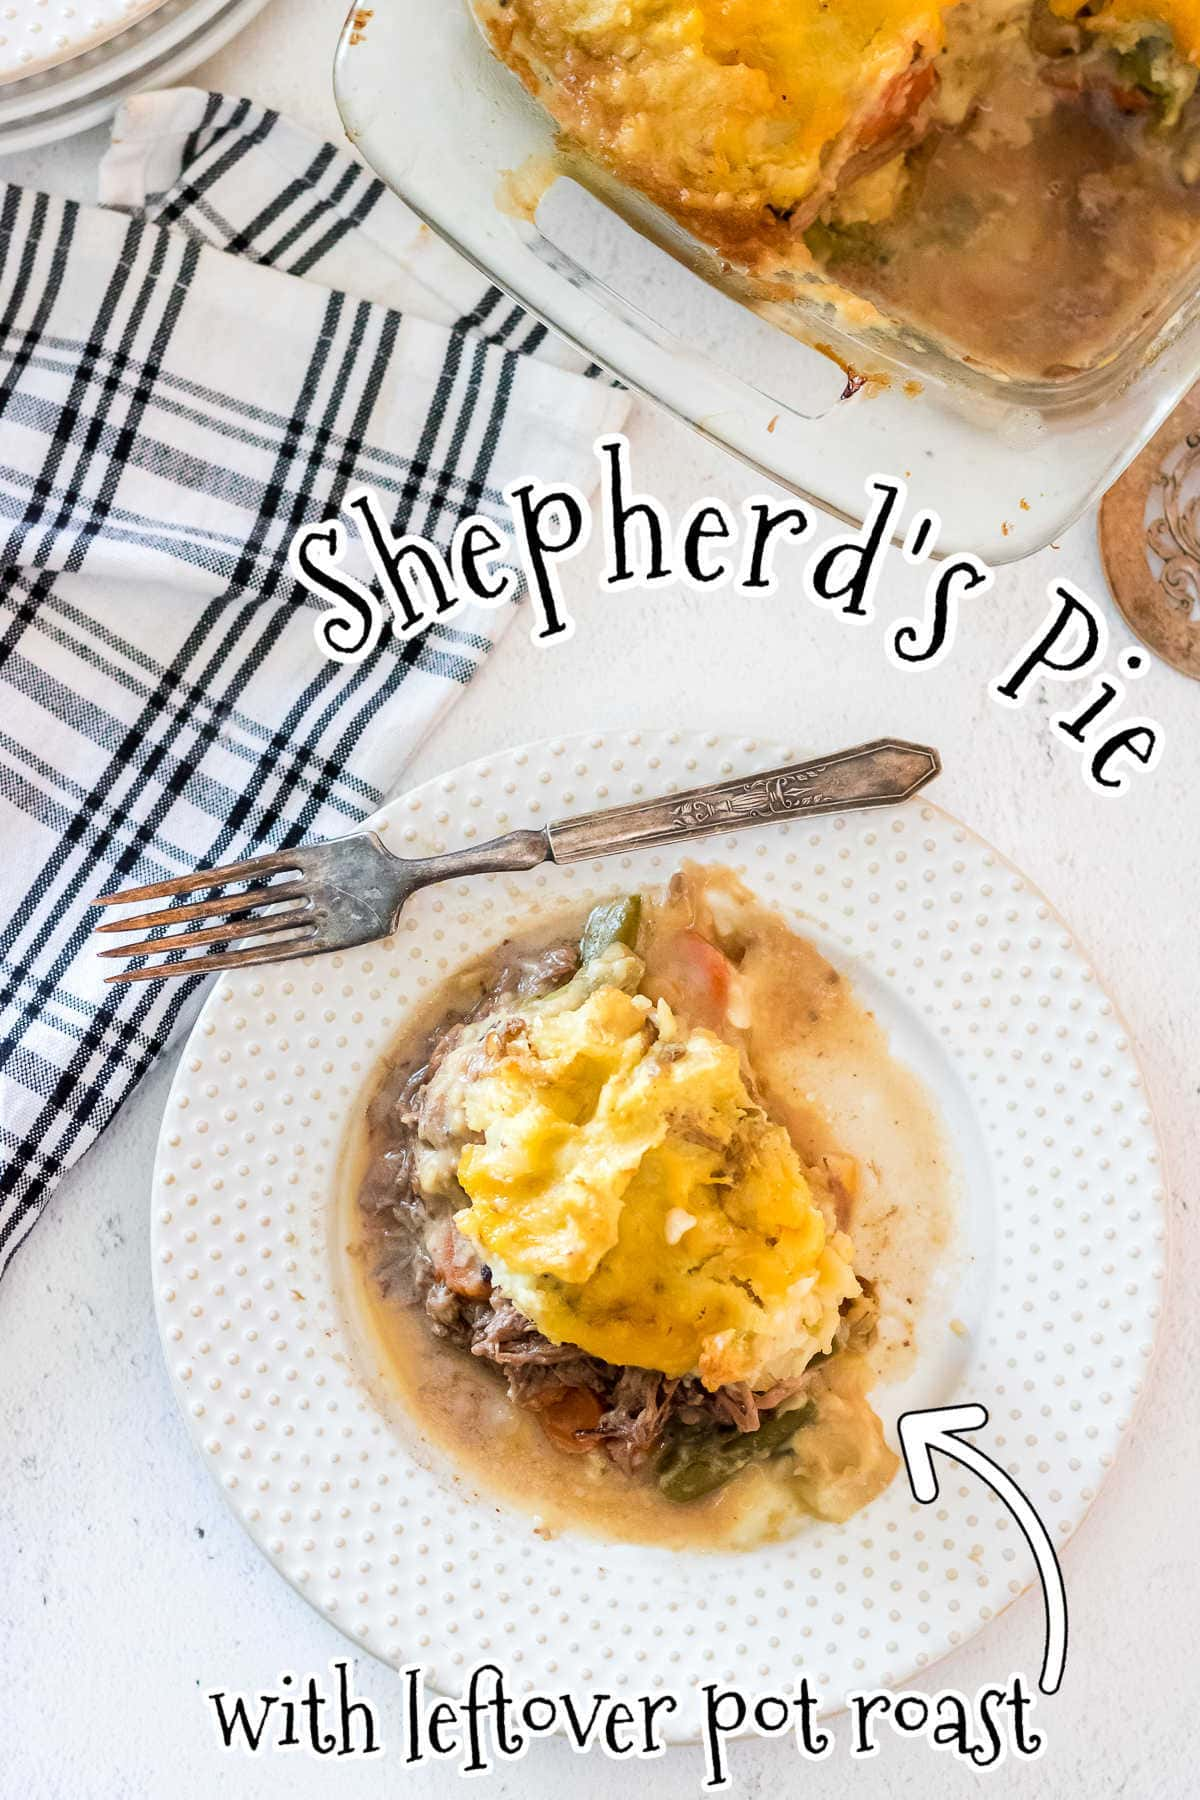 Overhead view of the finished casserole dish with a serving of the shepherd's pie on a nearby plate. Title text overlay.